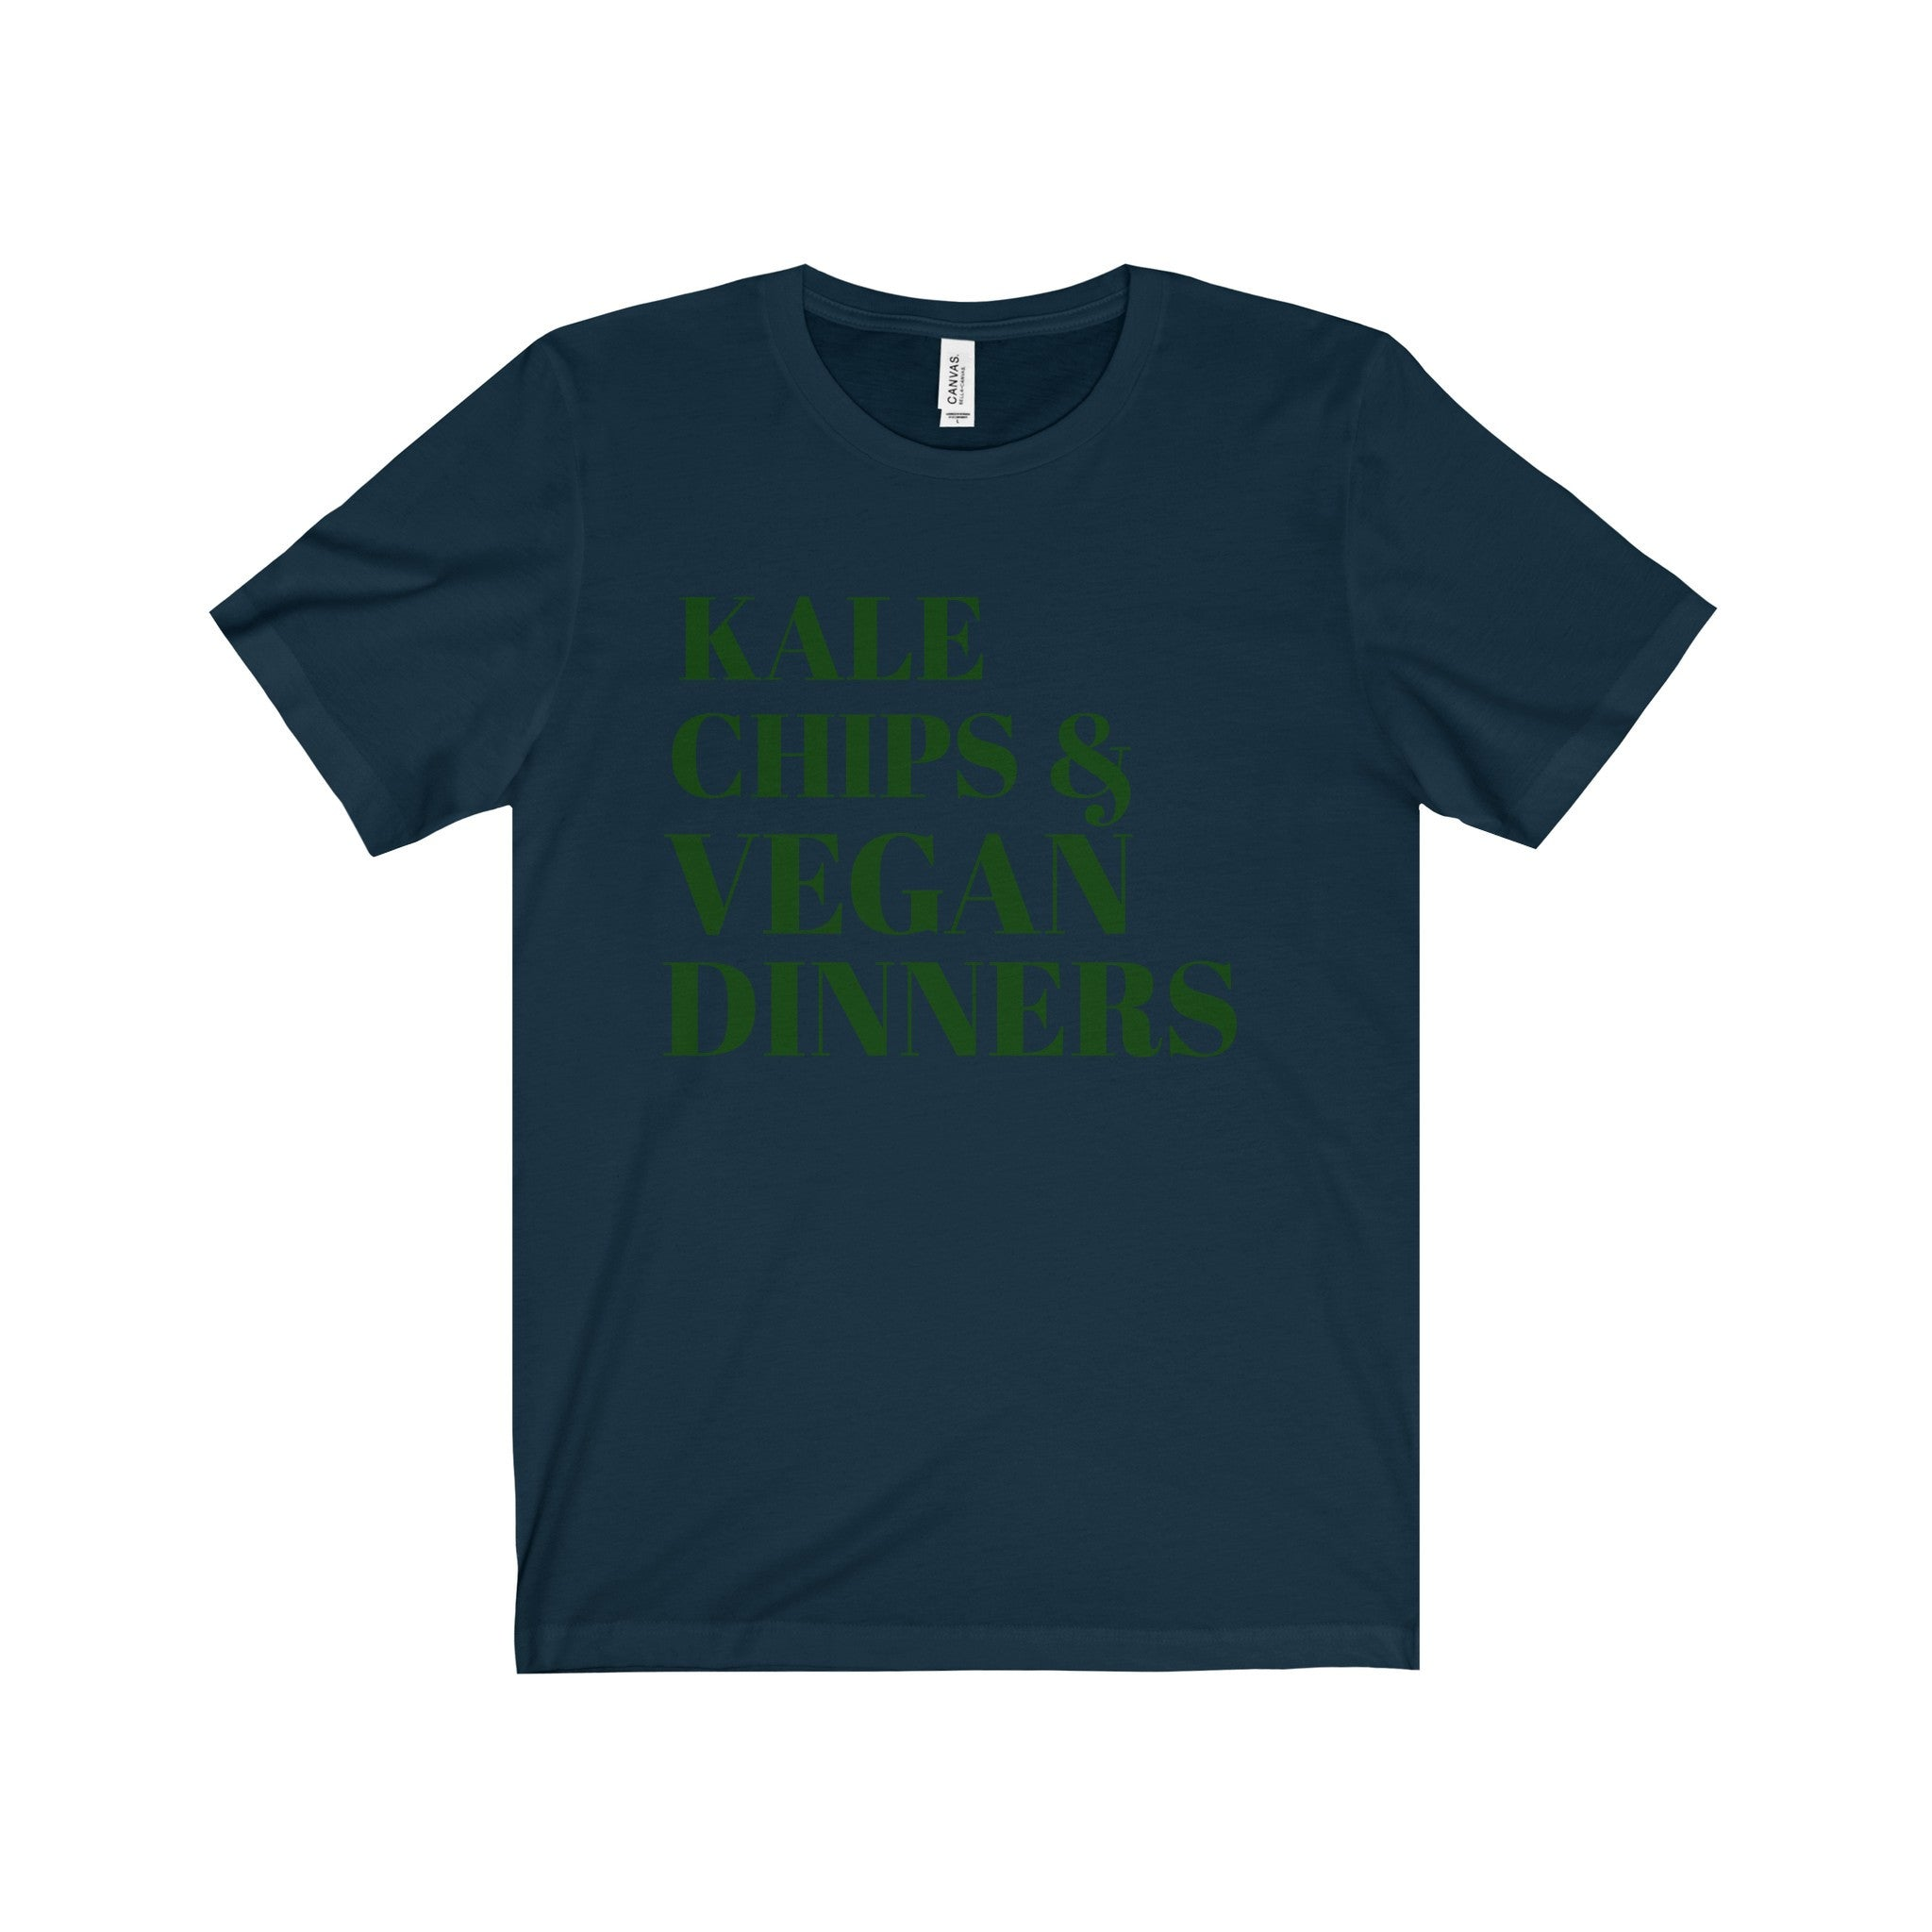 Kale Chips and Vegan Dinners Evergreen Letter Tee (8 colors available)